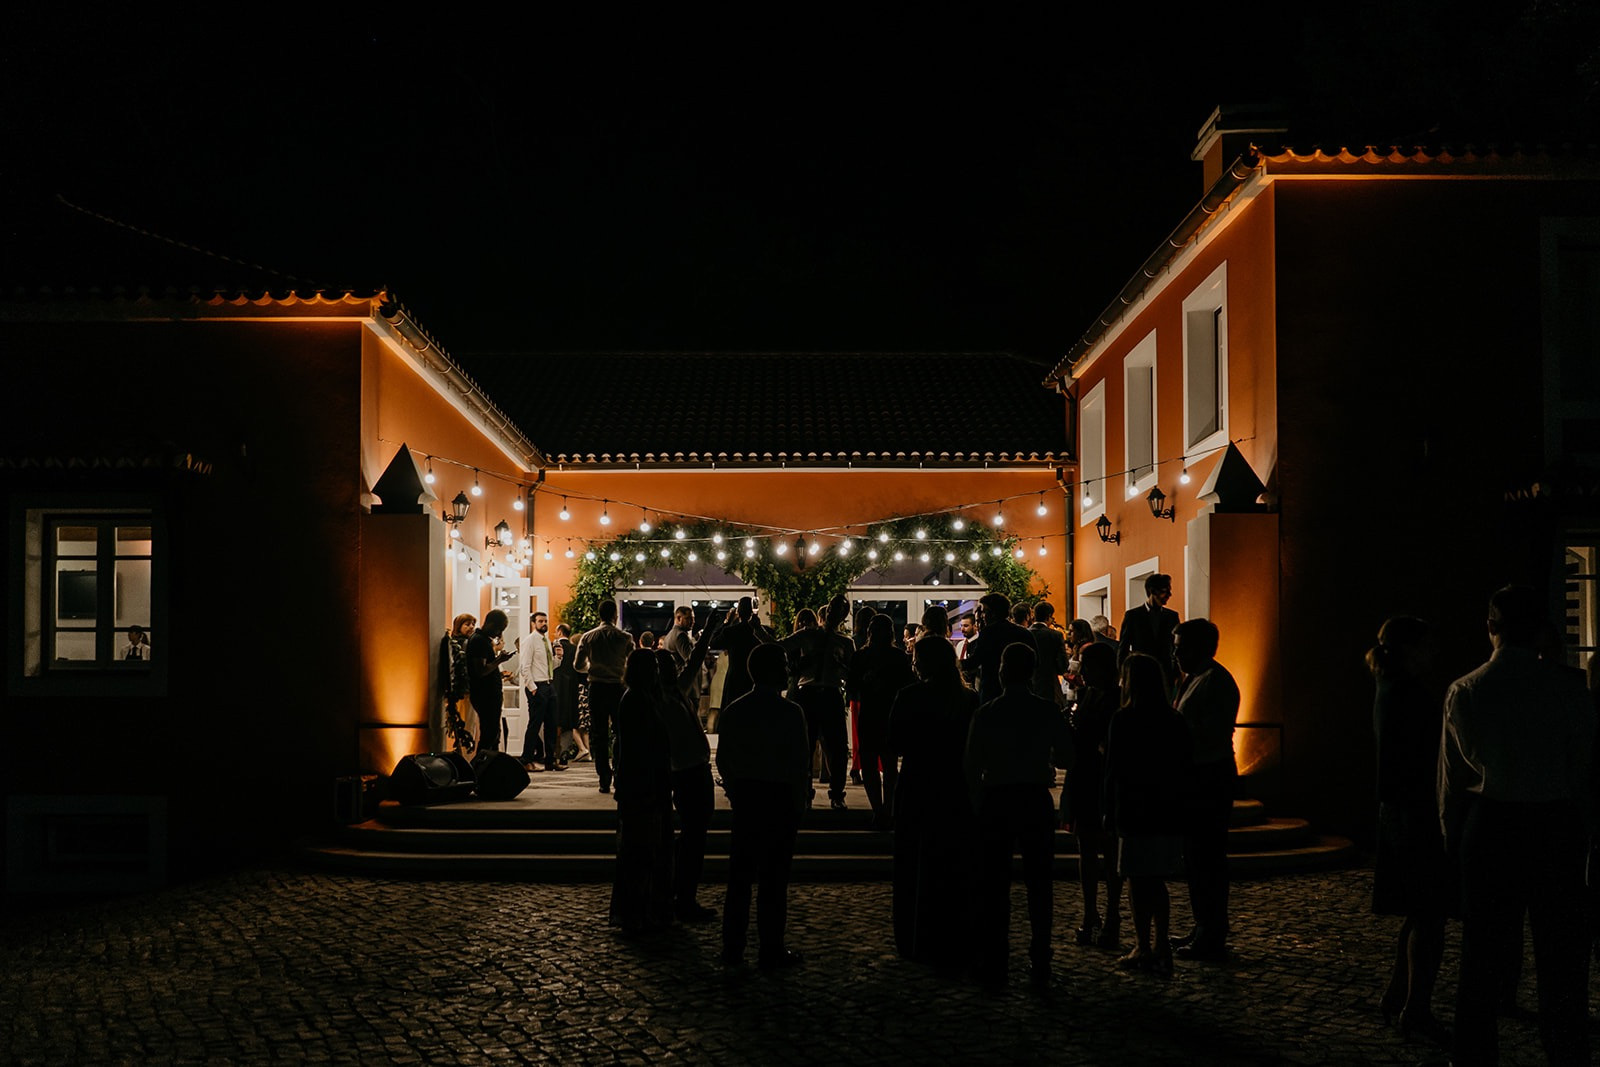 Vineyard venue in Portugal by night with fairylights